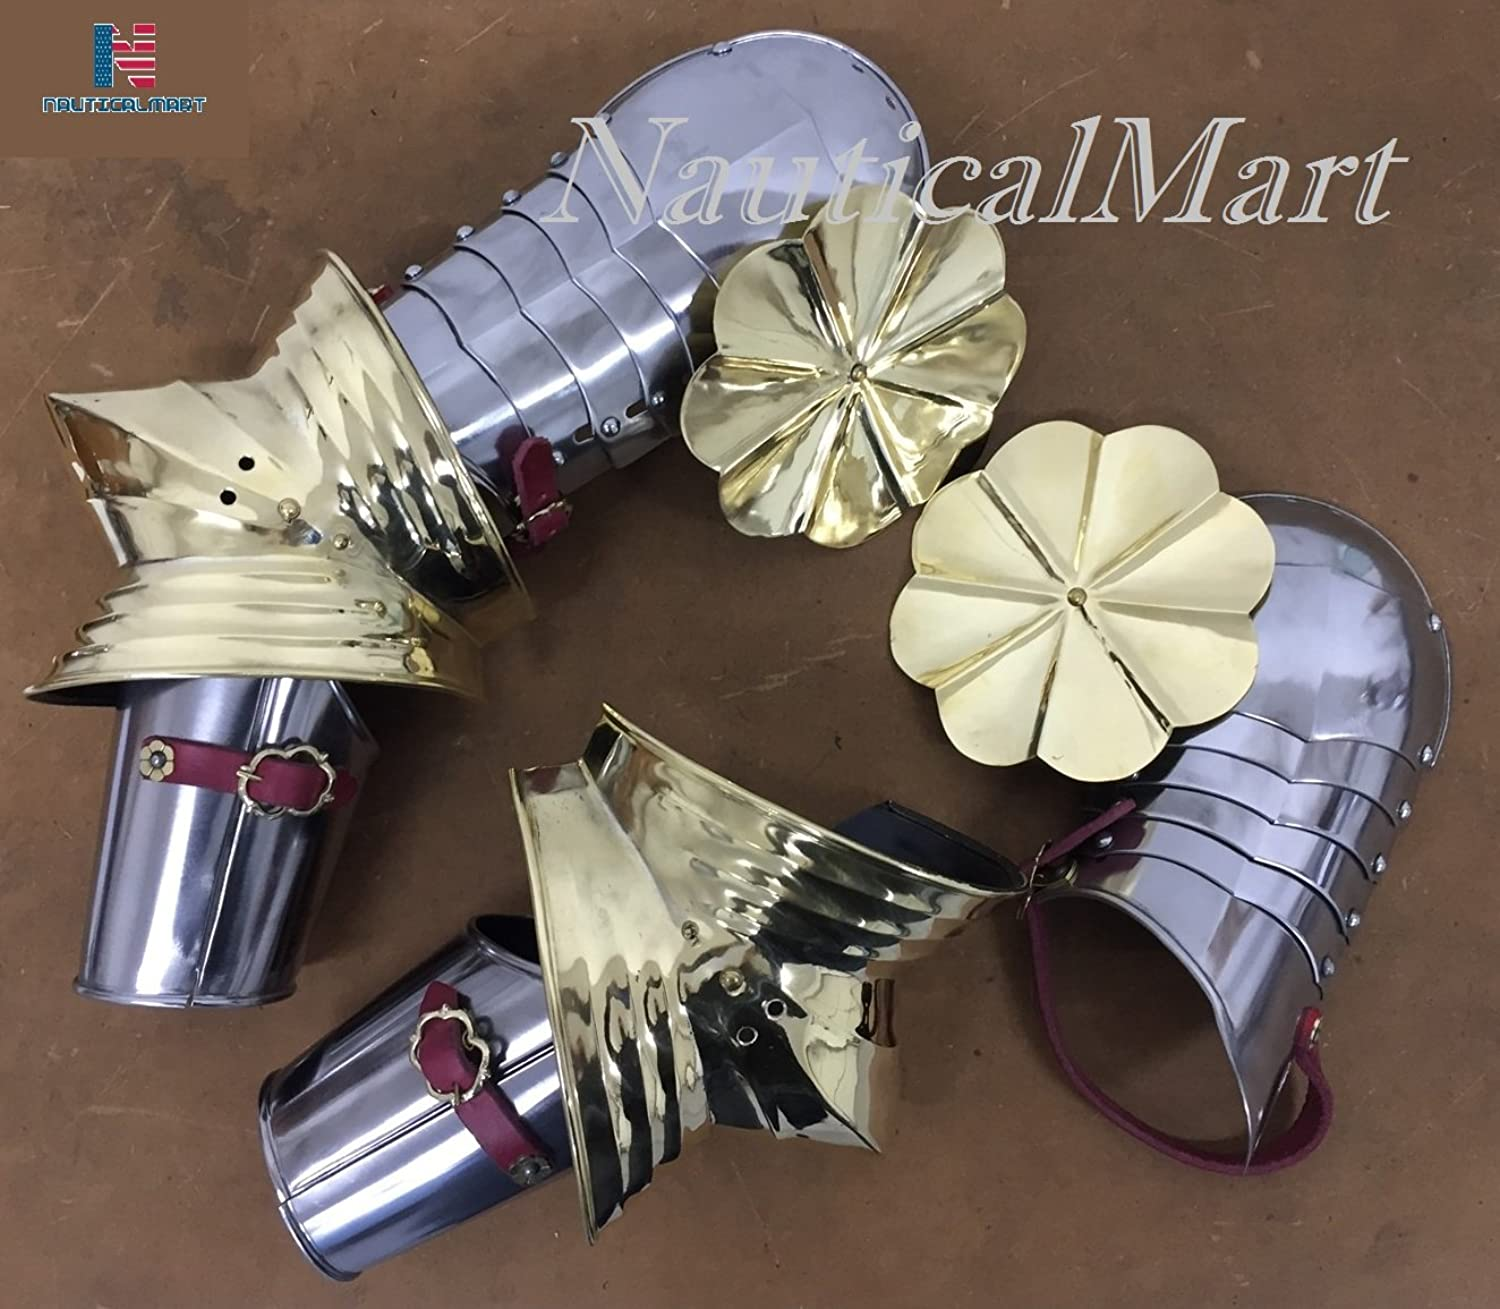 NAUTICALMART Medieval Gothic Armor Arm and Shoulder Set Steel or Brass Polishing